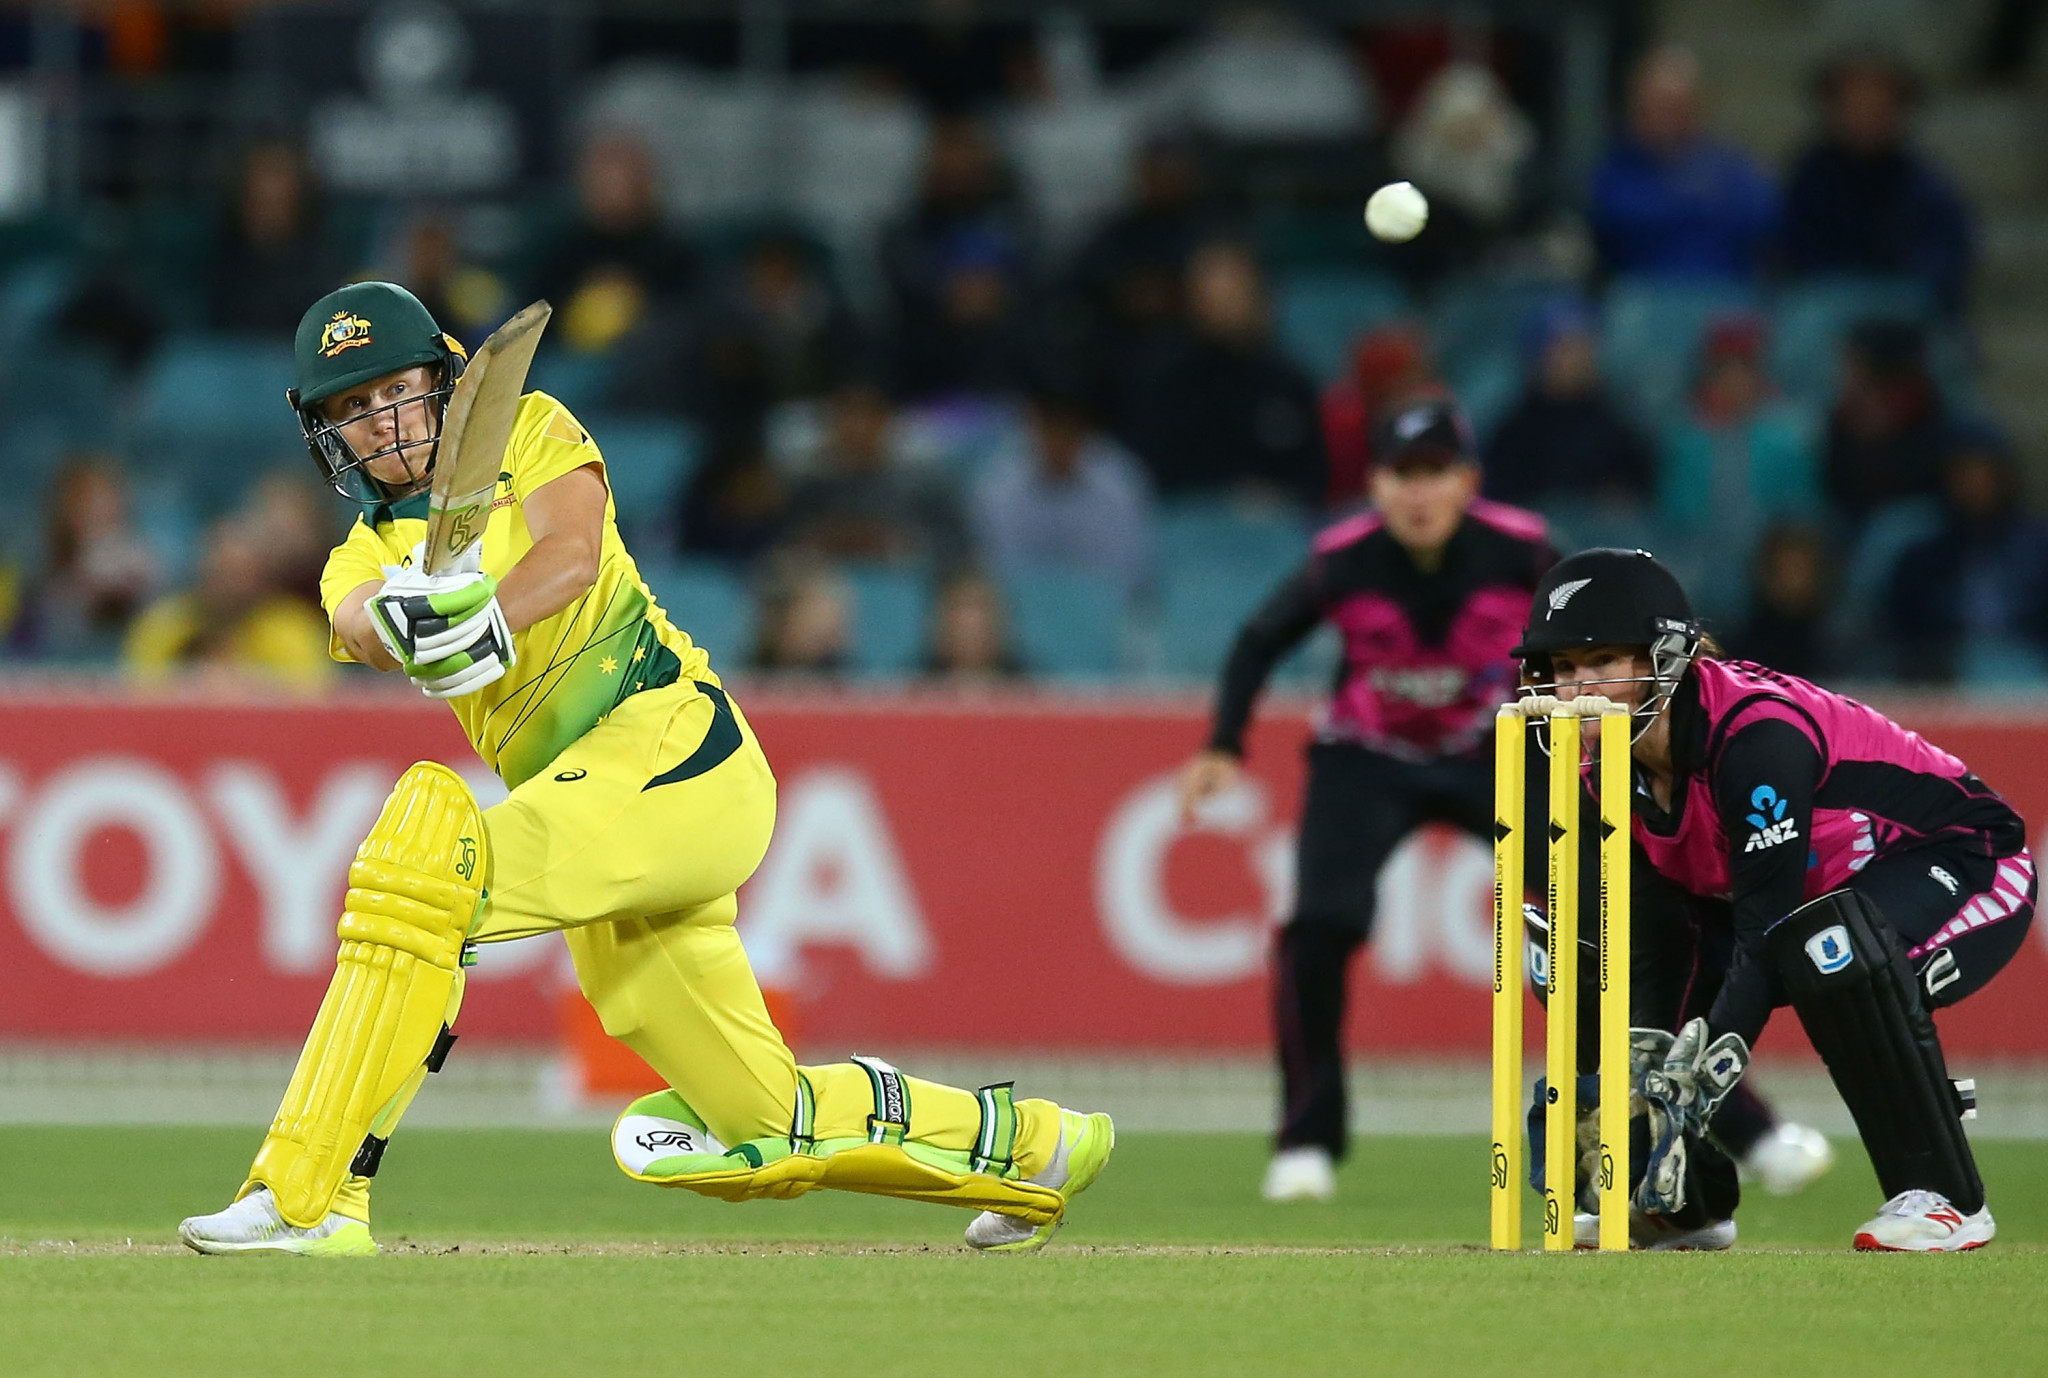 Australia's Alyssa Healy has been named the T20I Cricketer of the Year for the second year running ©ICC